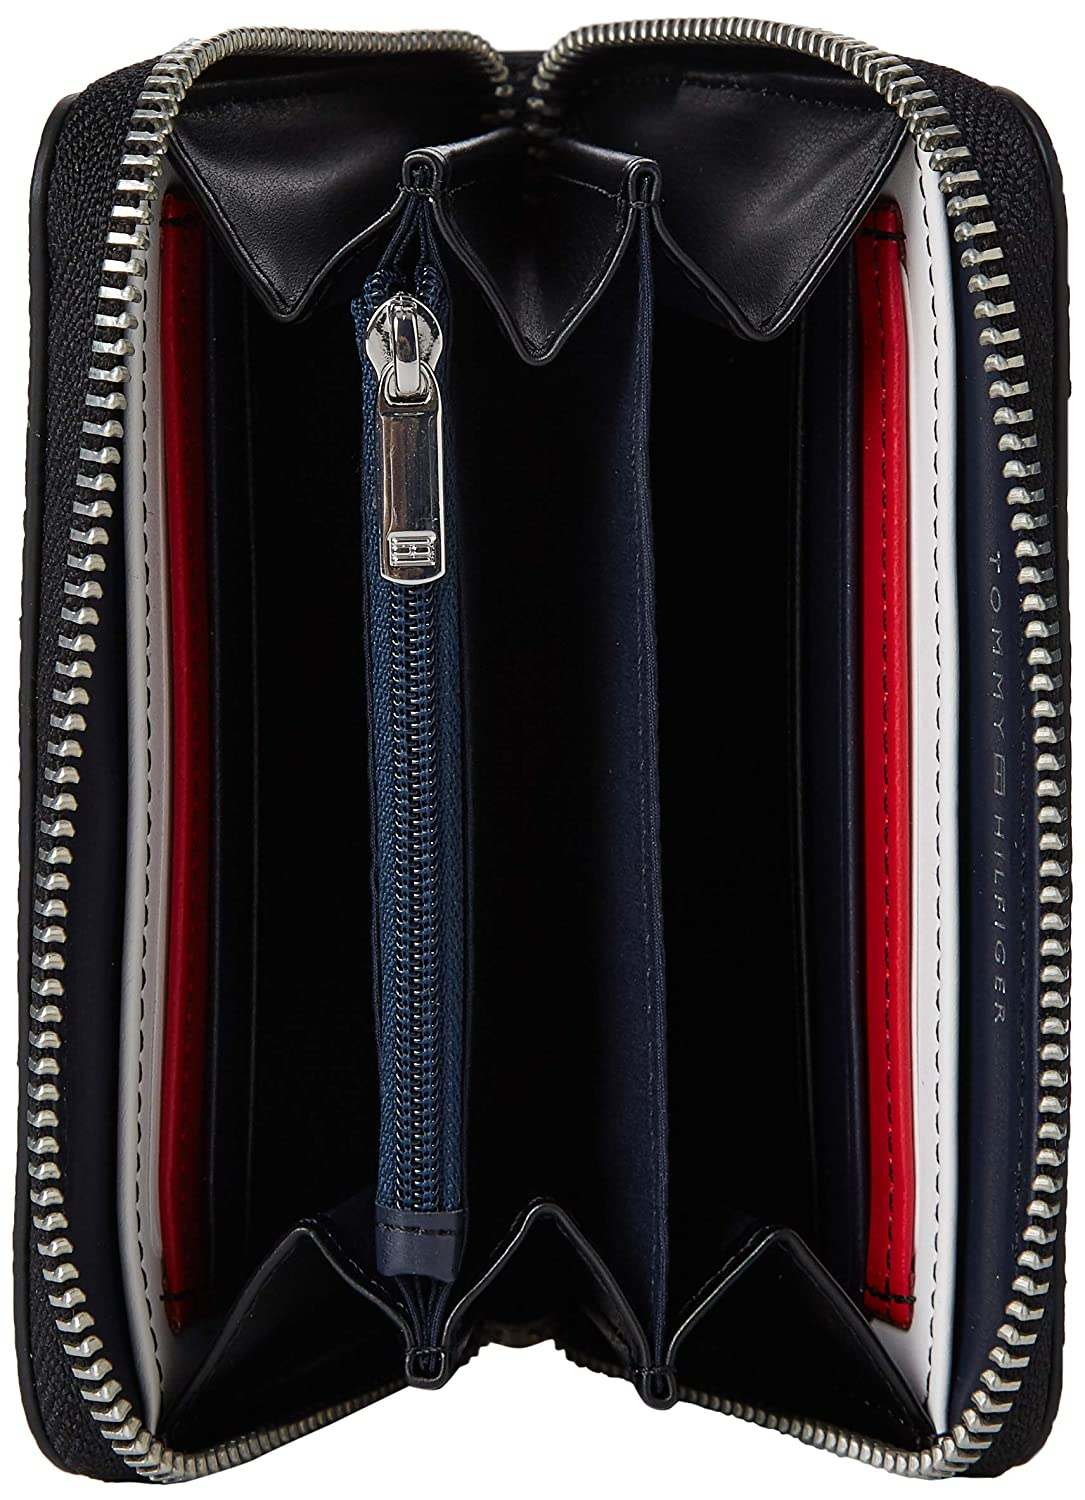 Tommy Hilfiger - Th Core Compact Za Wallet, Carteras Mujer ...